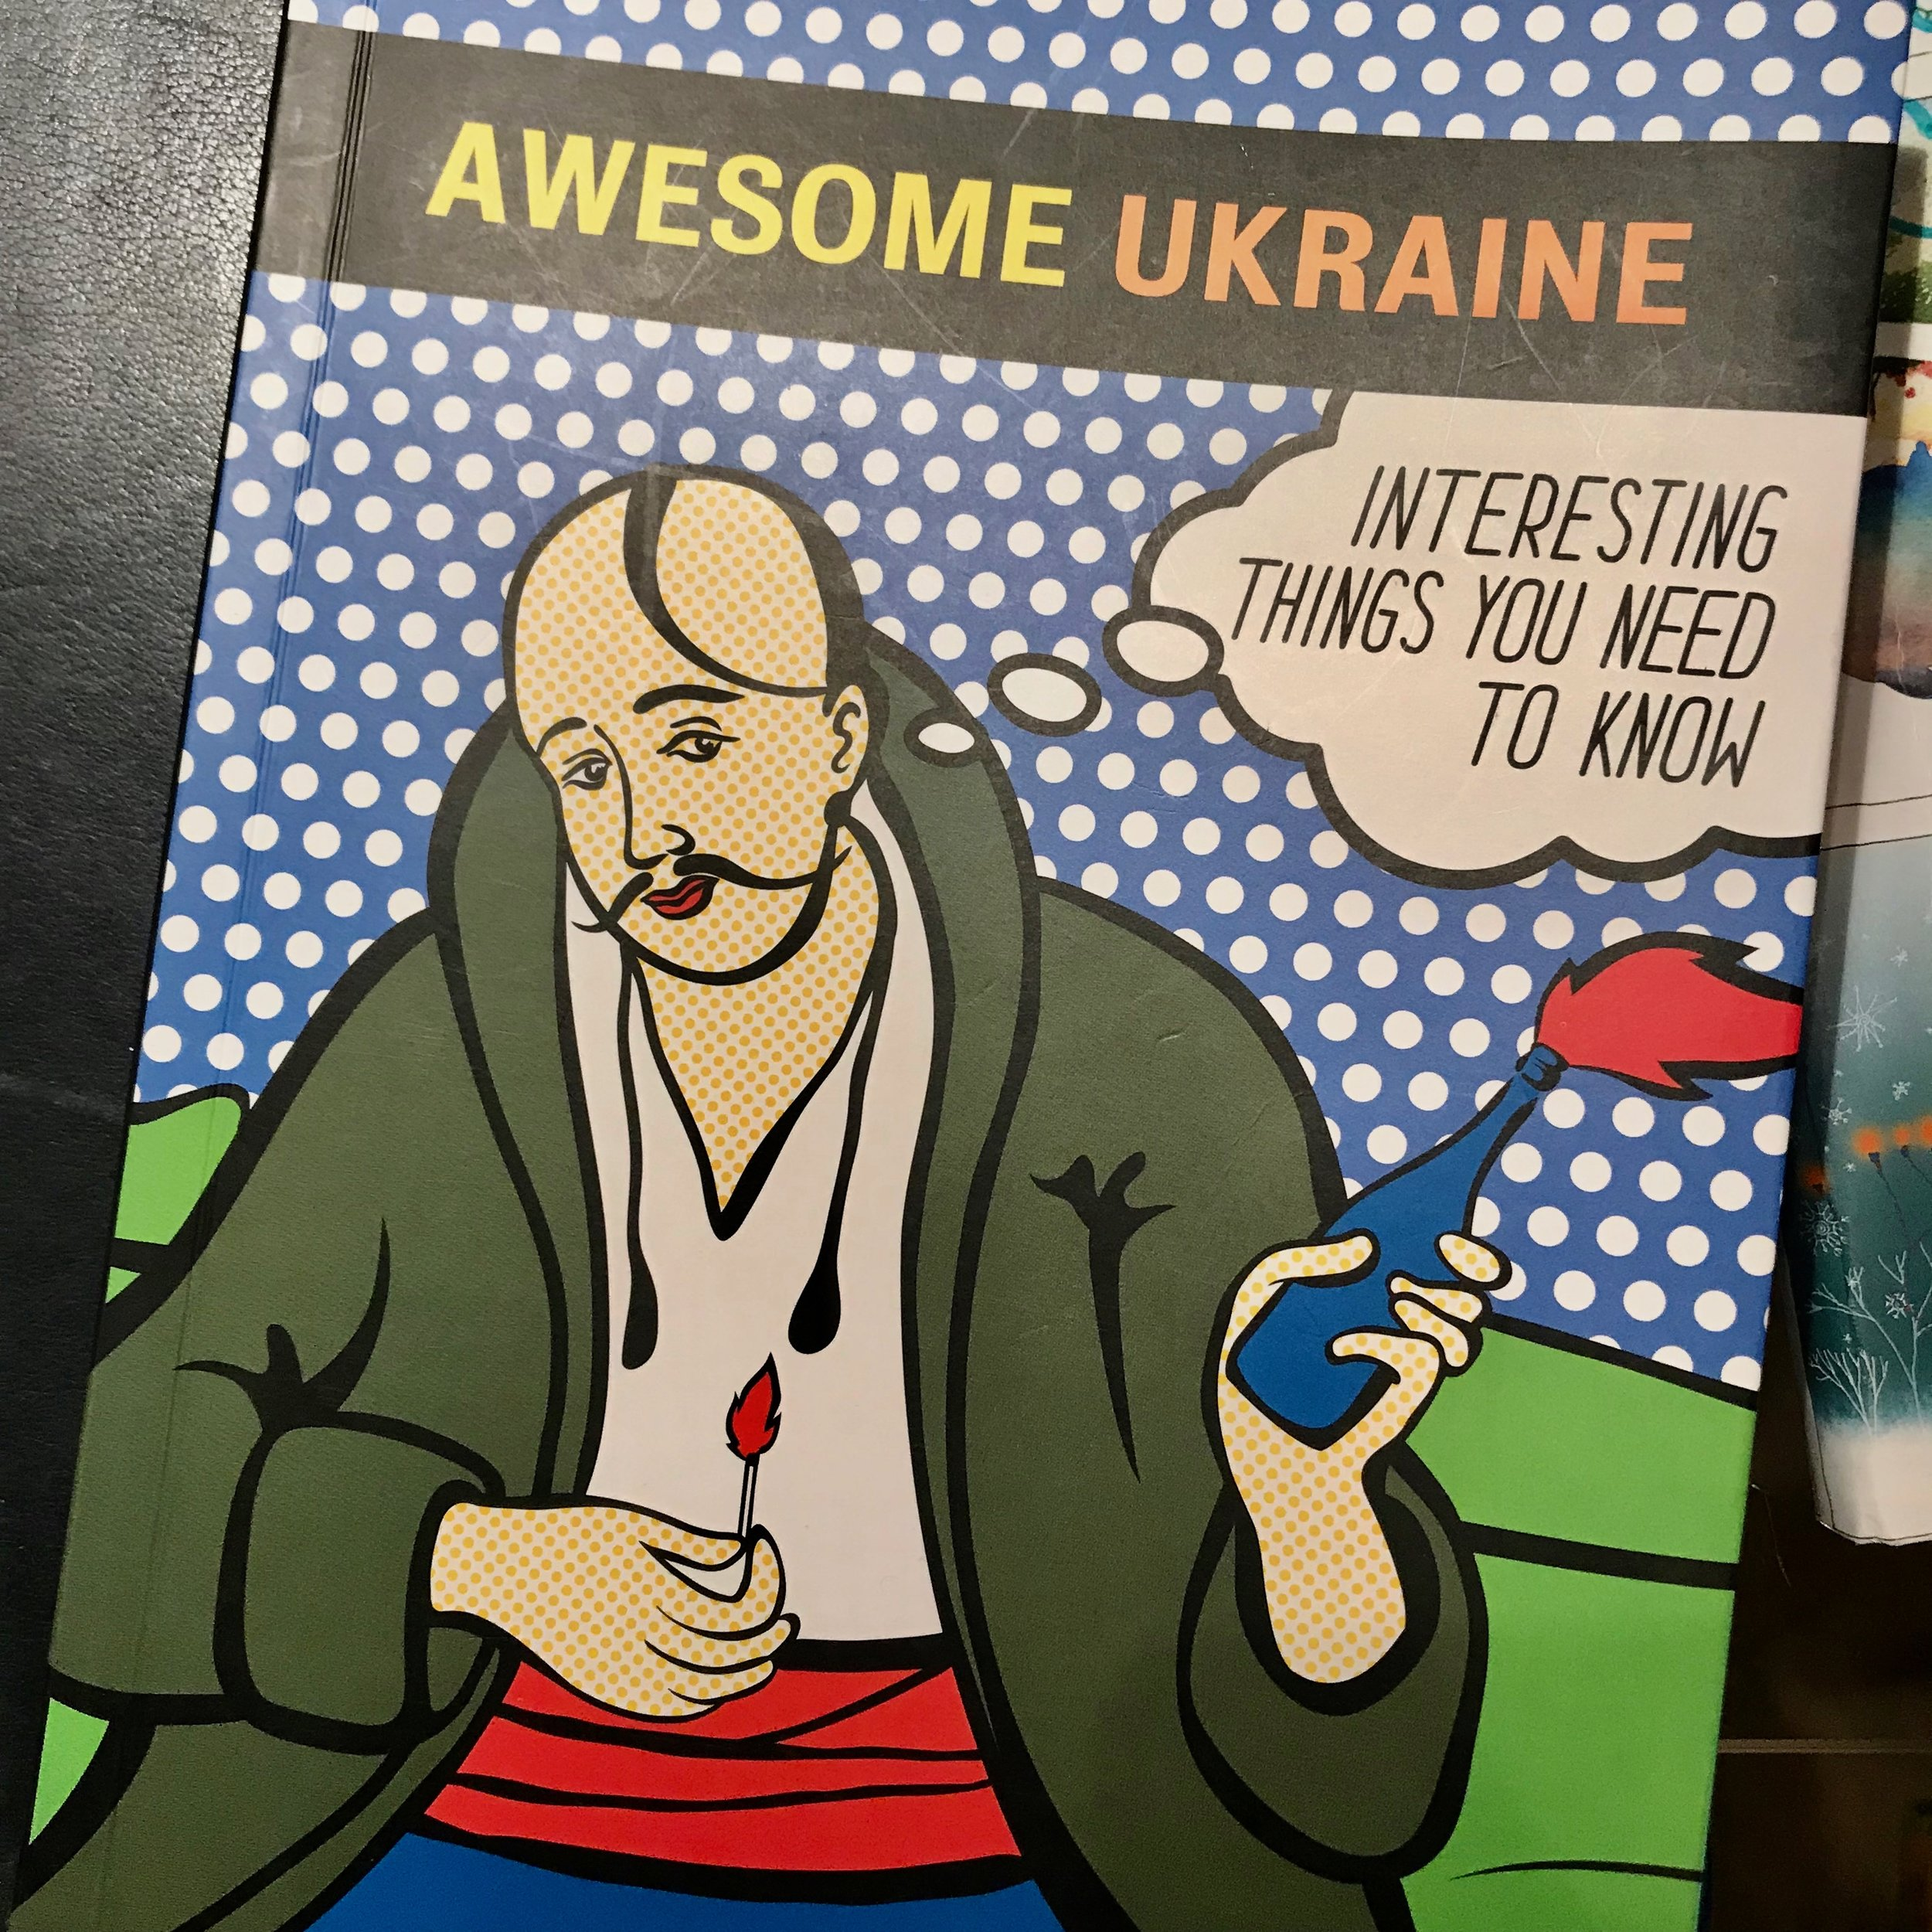 A beautifully designed cultural guide to Ukraine, thanks to the Kyiv Academy of Media Arts.